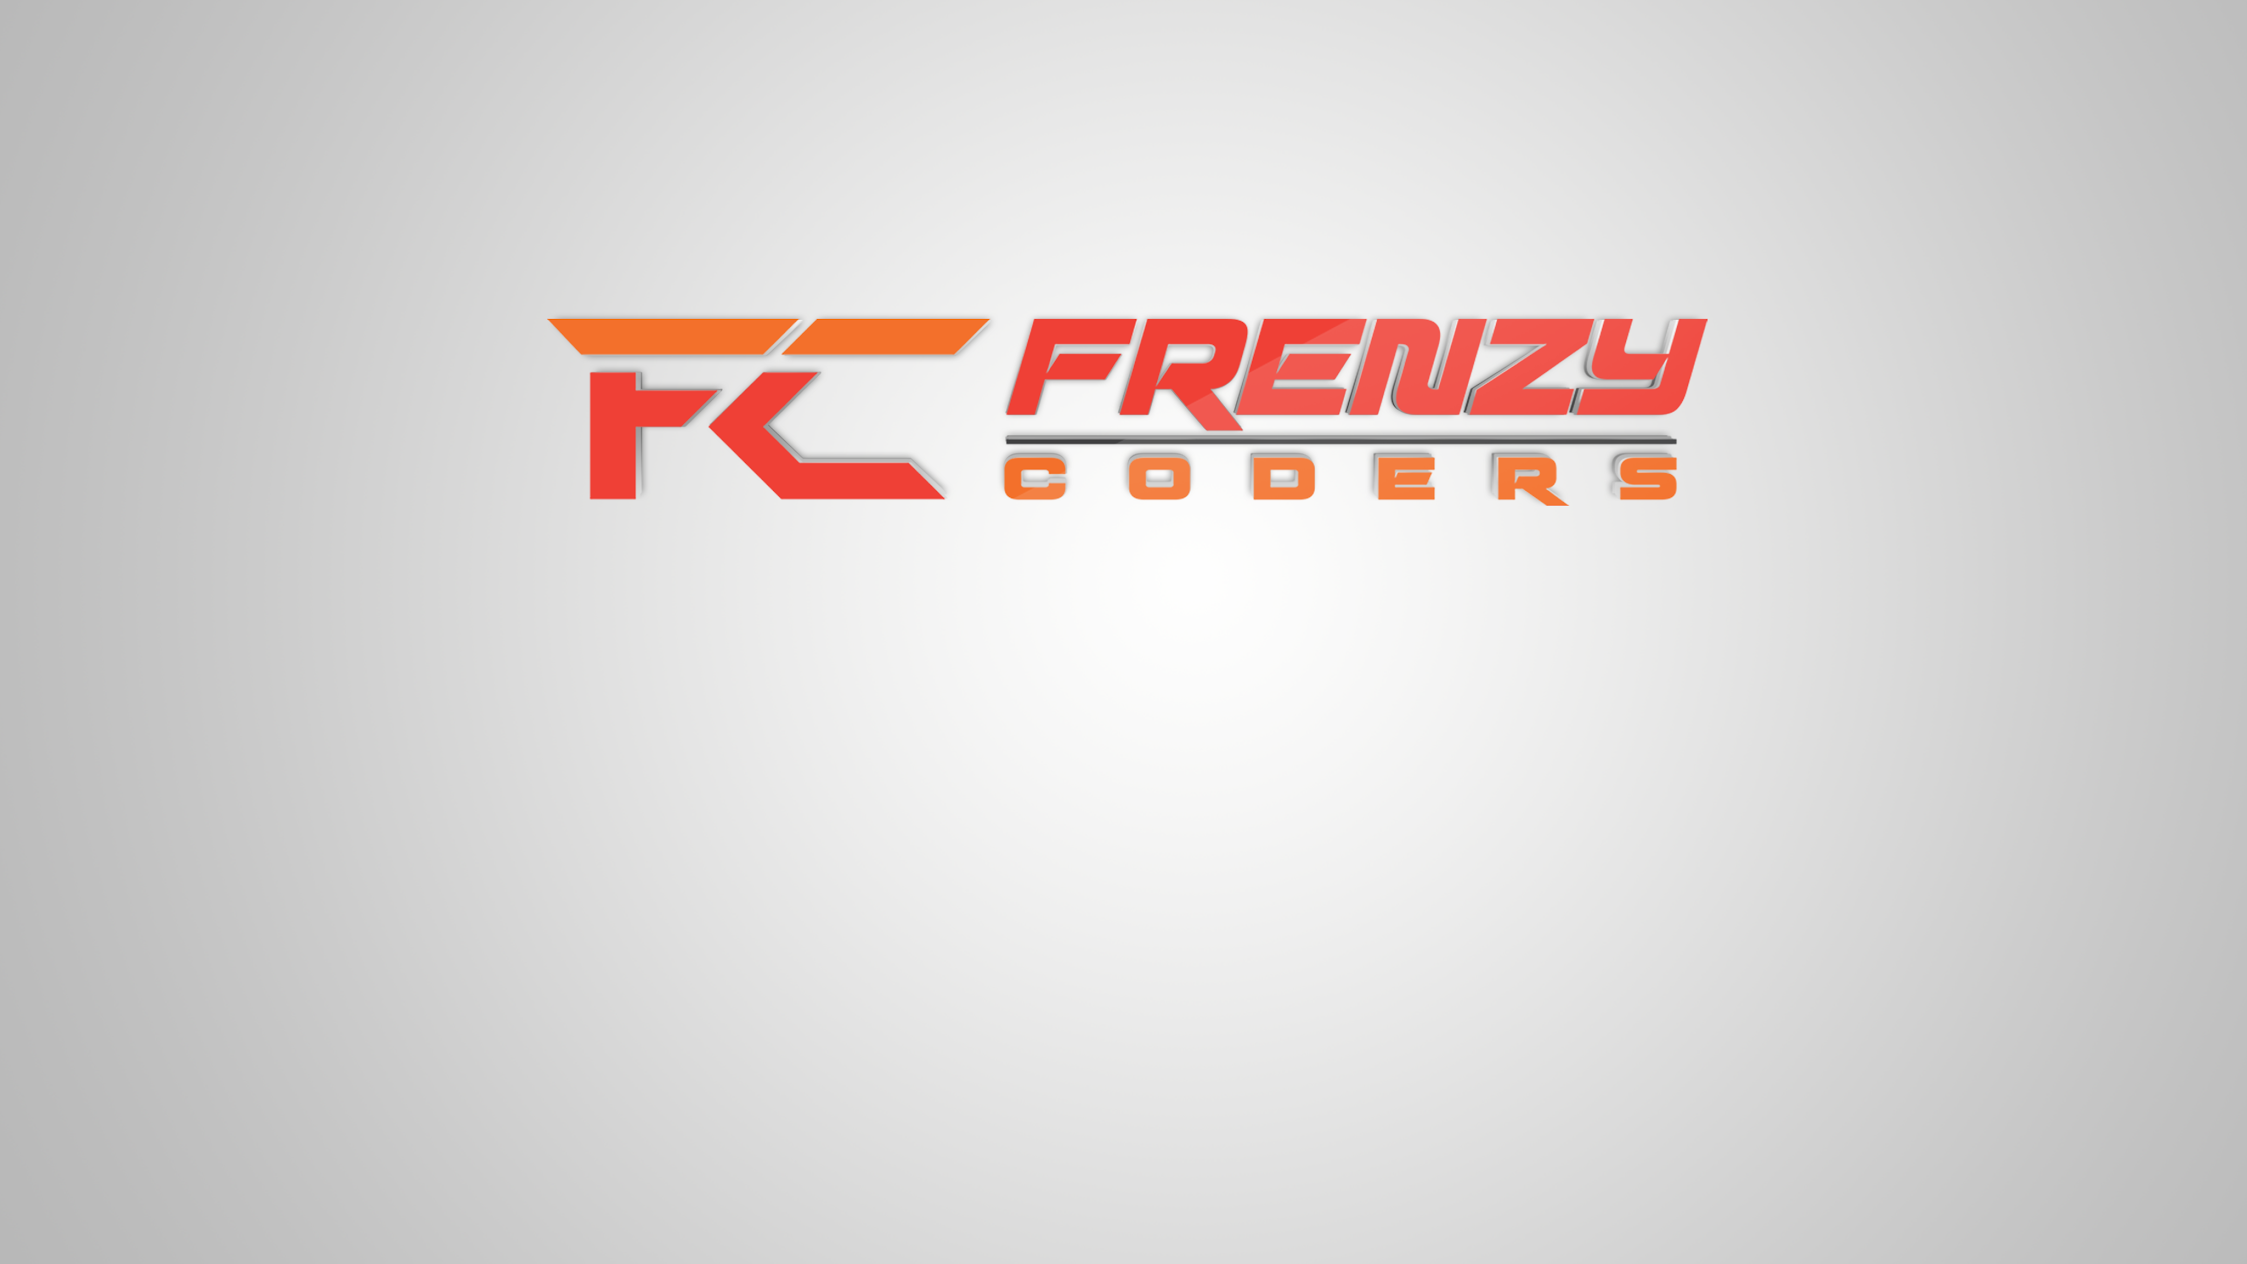 FRENZYCODERS